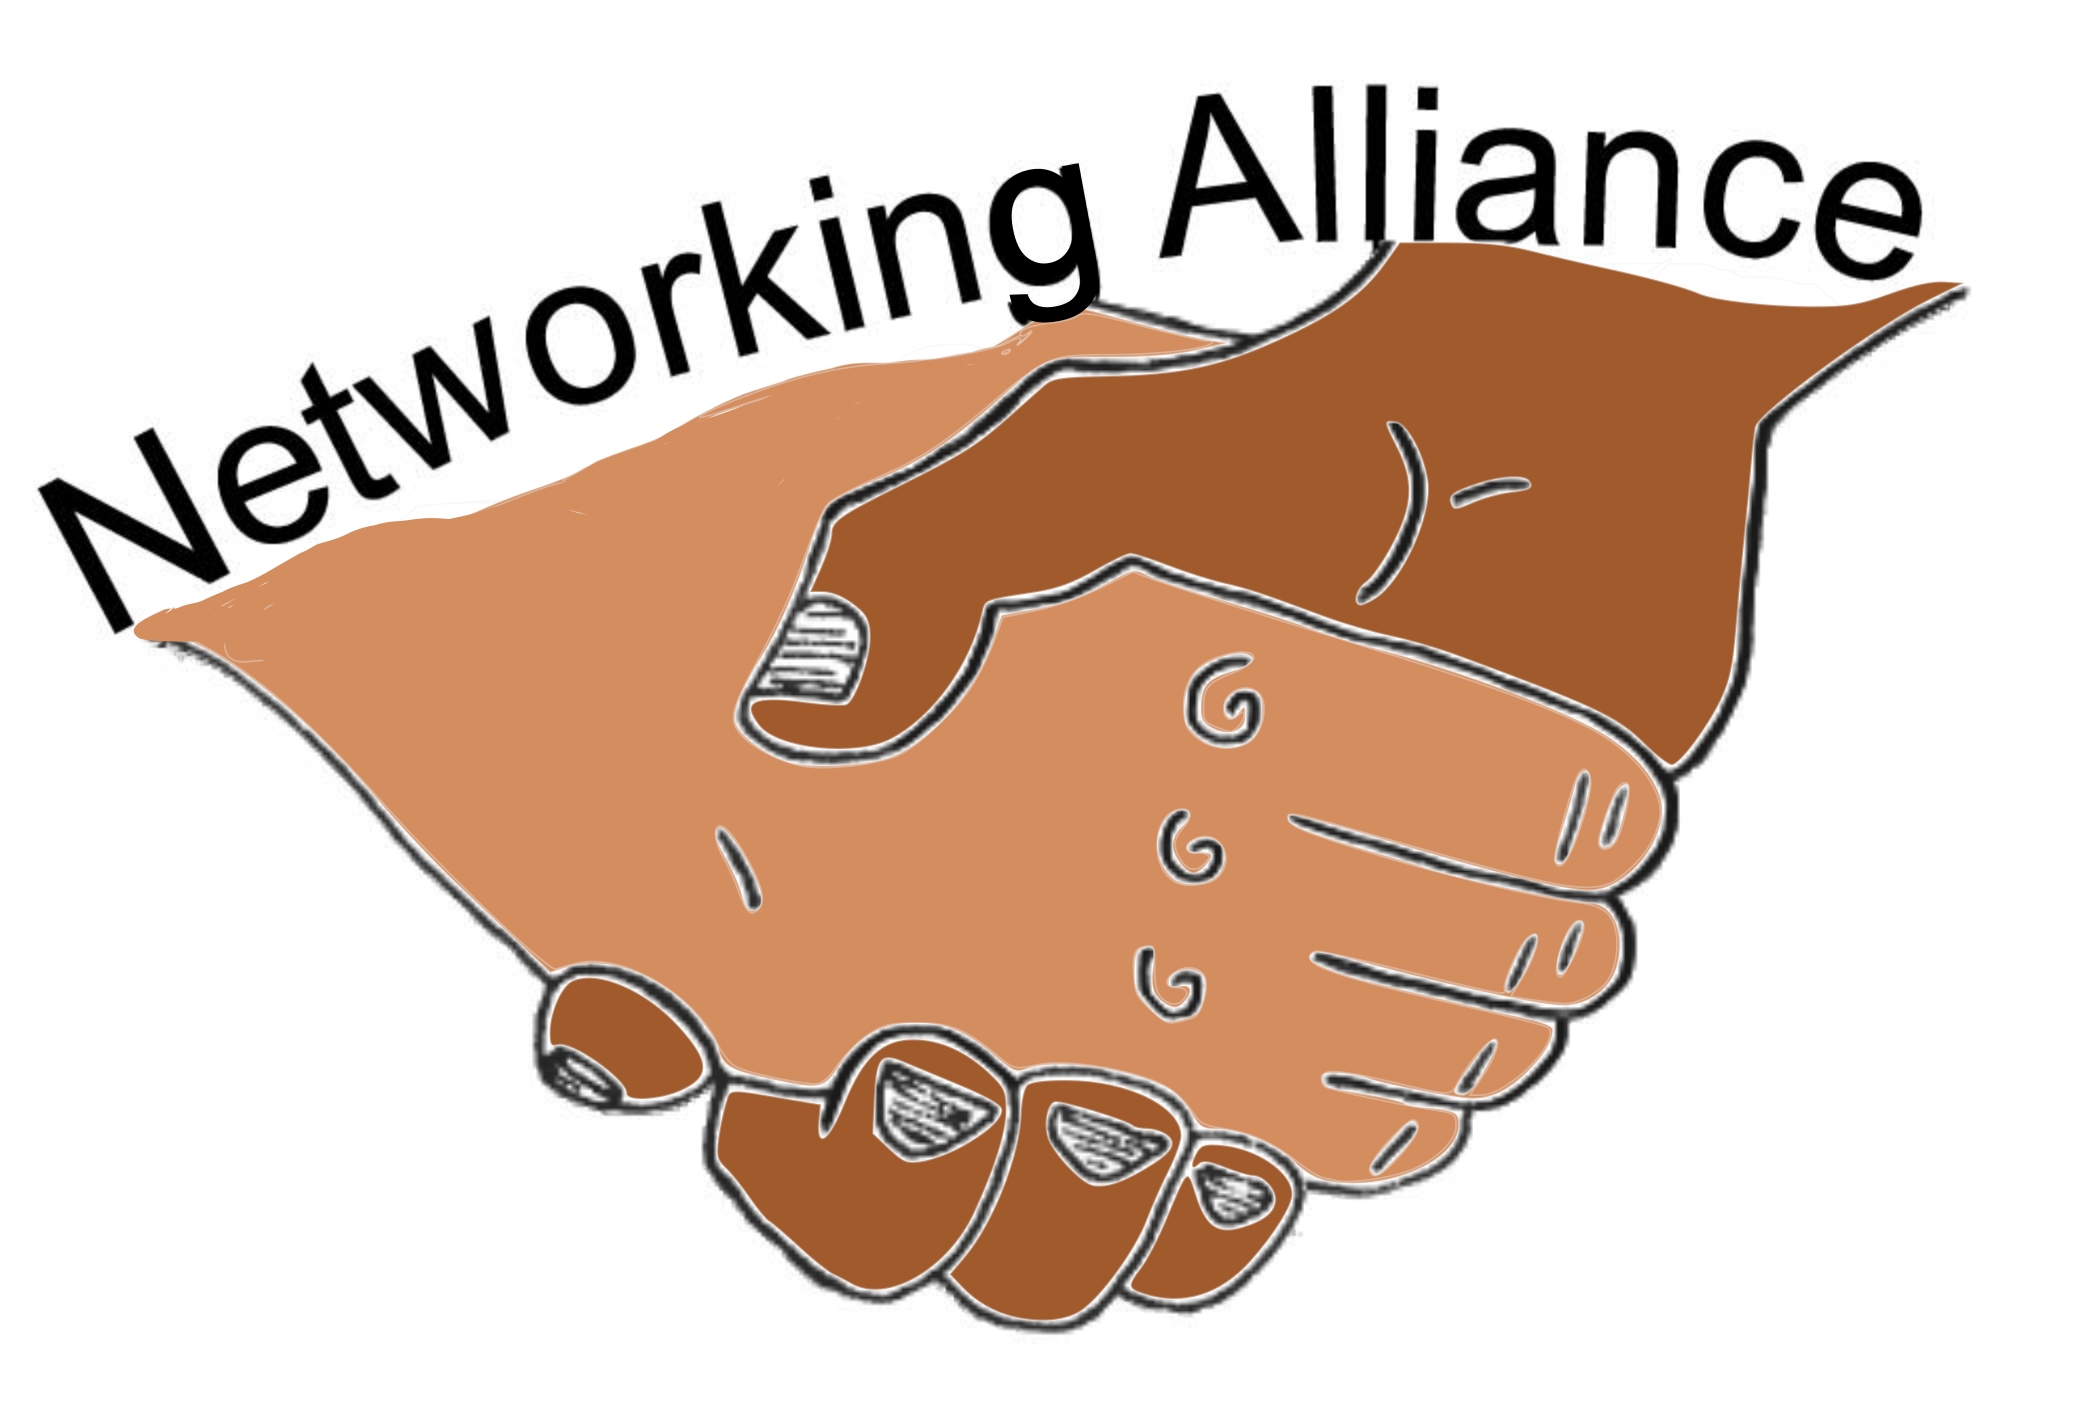 networkinalliance